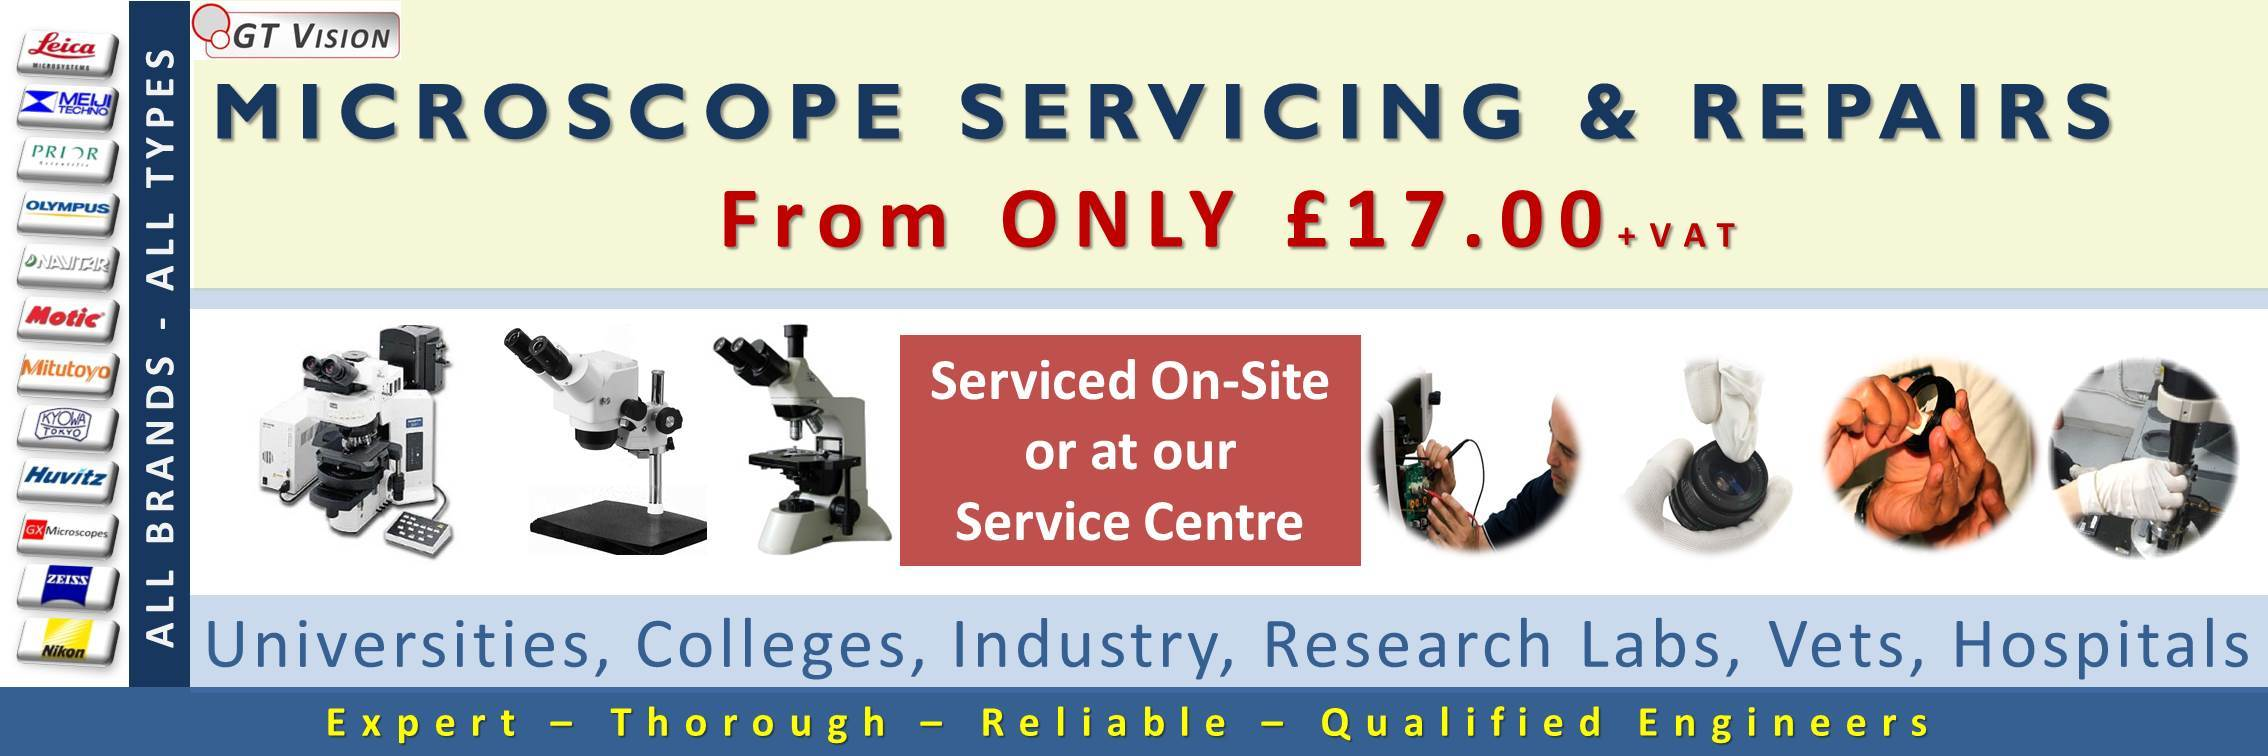 Microscope_Servicing_WEB1_AD_-_APR_2015